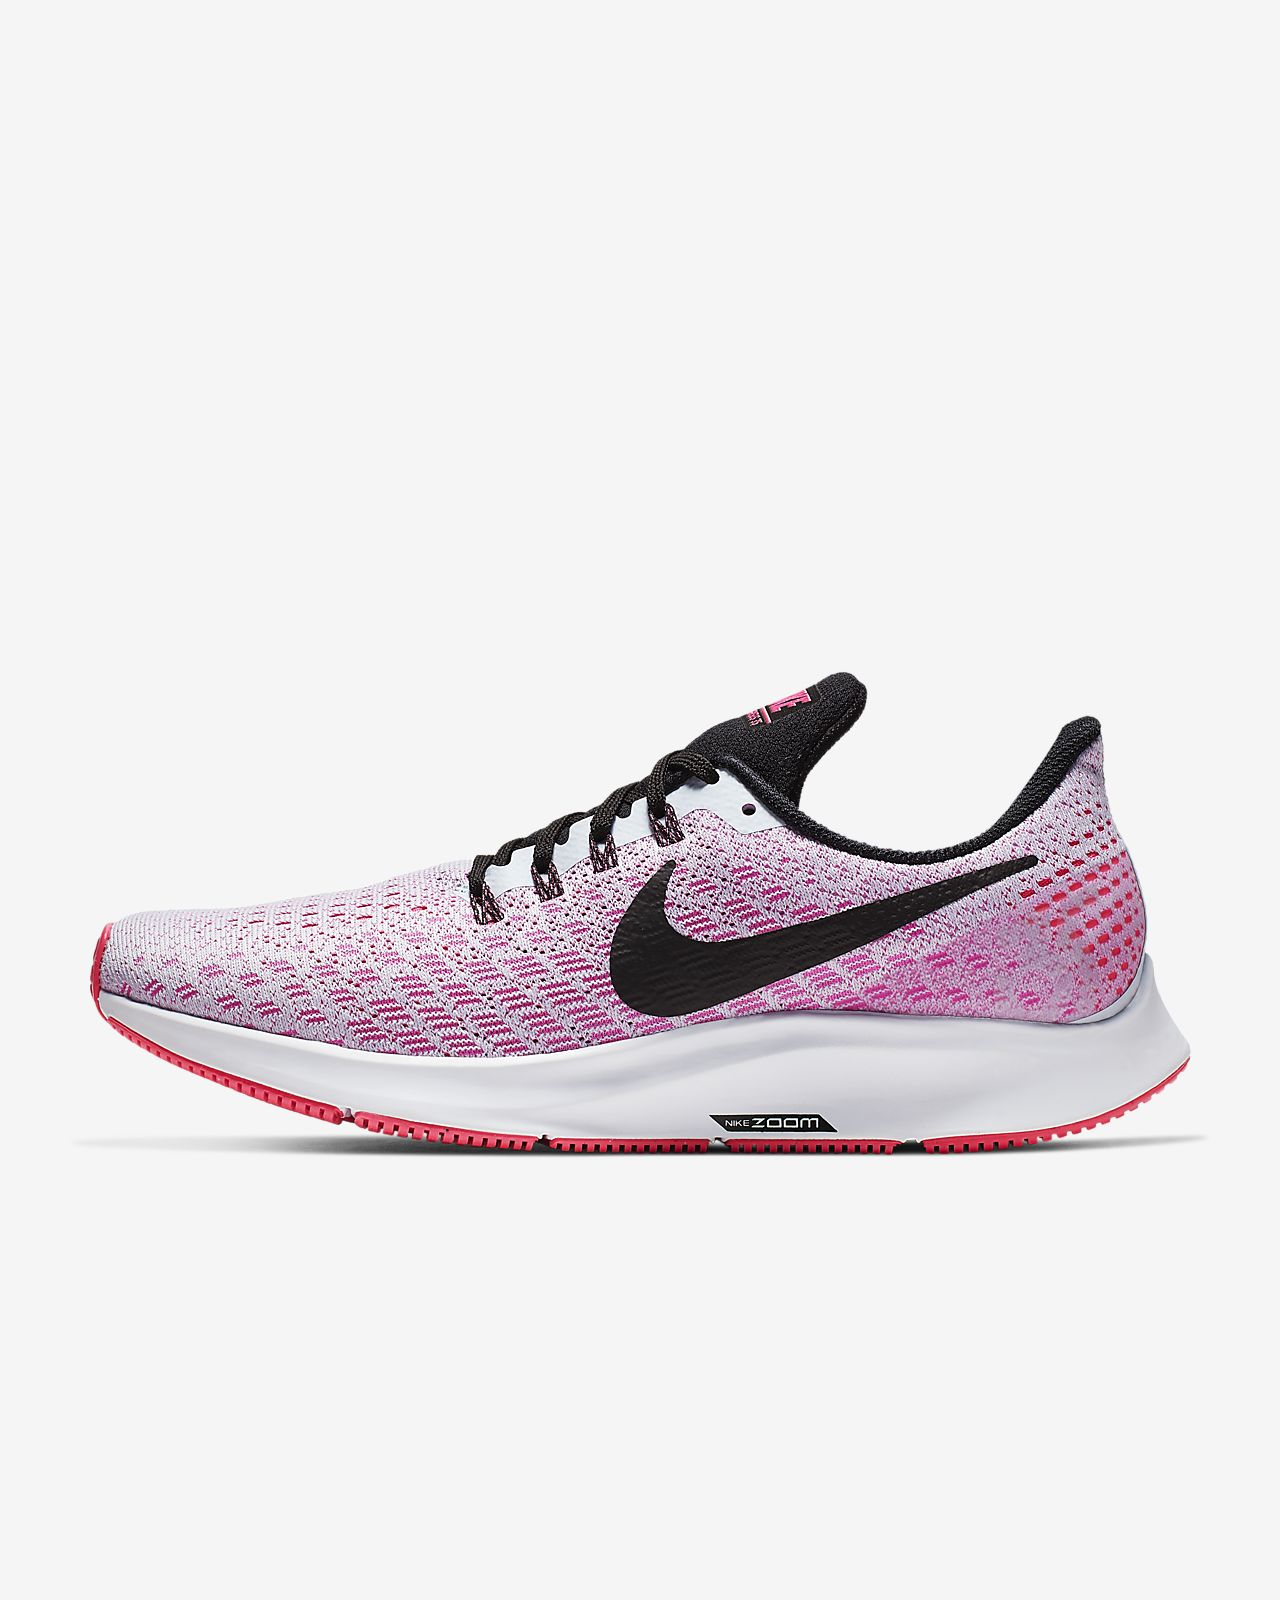 6feb751d42e Nike Air Zoom Pegasus 35 Women s Running Shoe. Nike.com